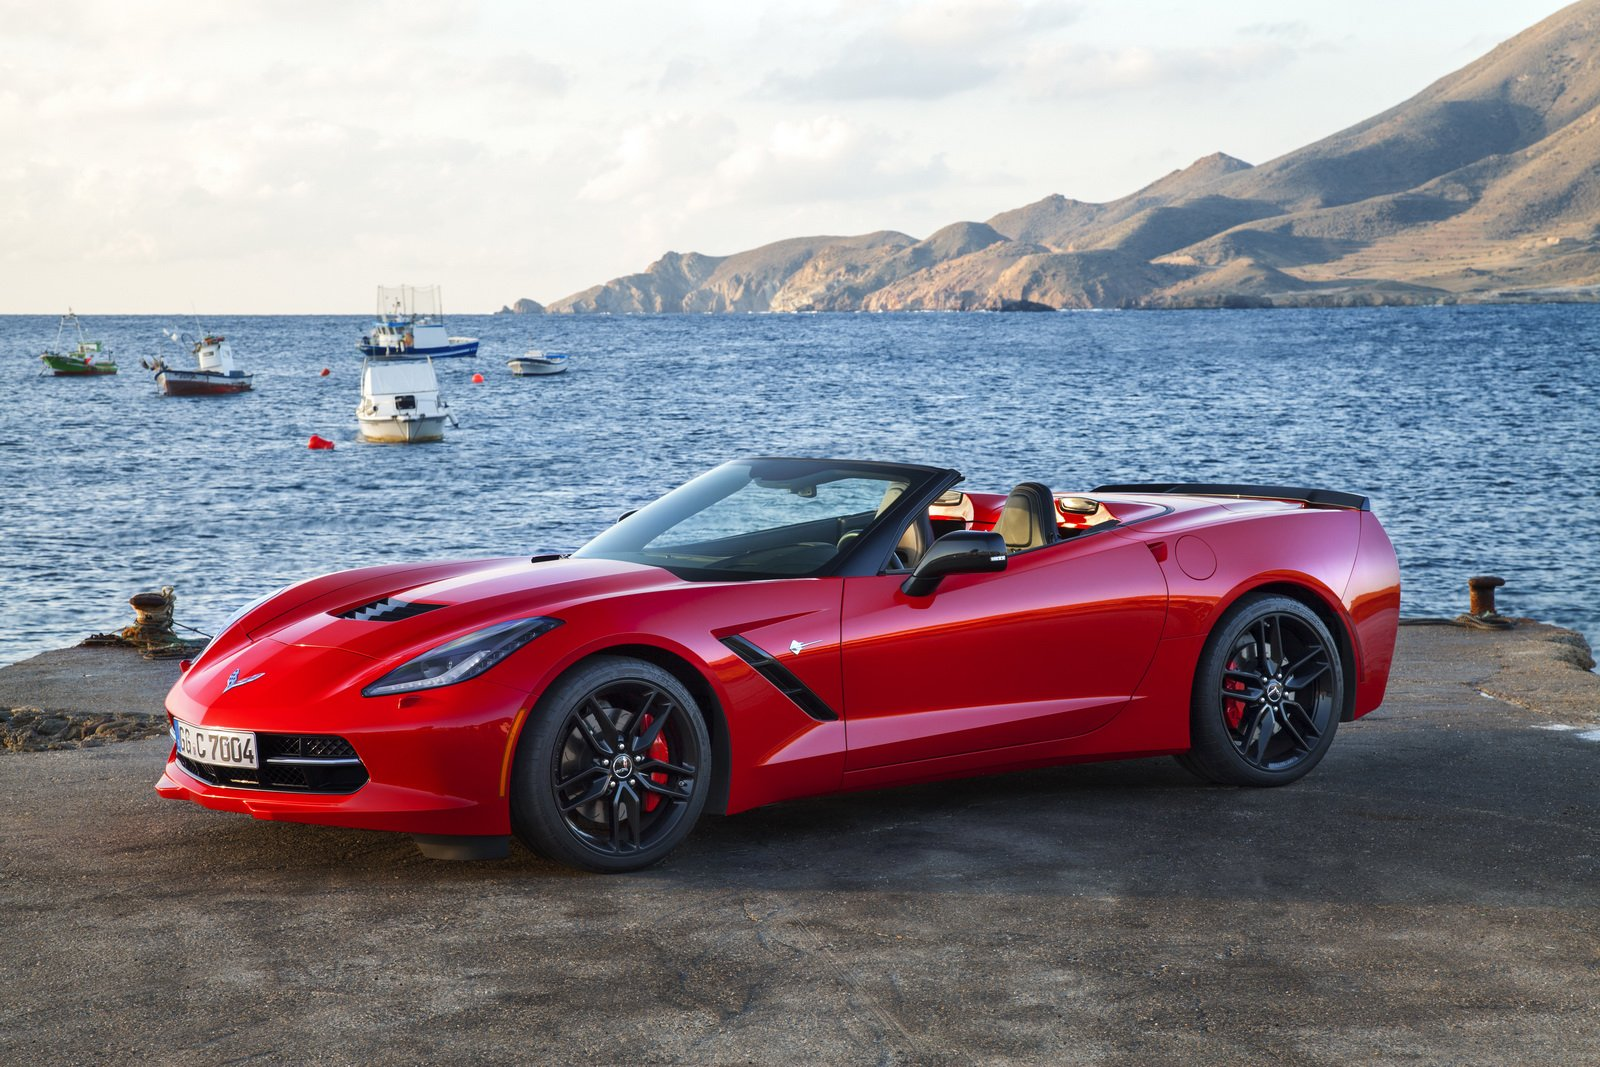 2015 Corvette Colors >> 2015 Chevy chevrolet corvette stingray convertible cabriolet red usa cars wallpaper | 1600x1067 ...